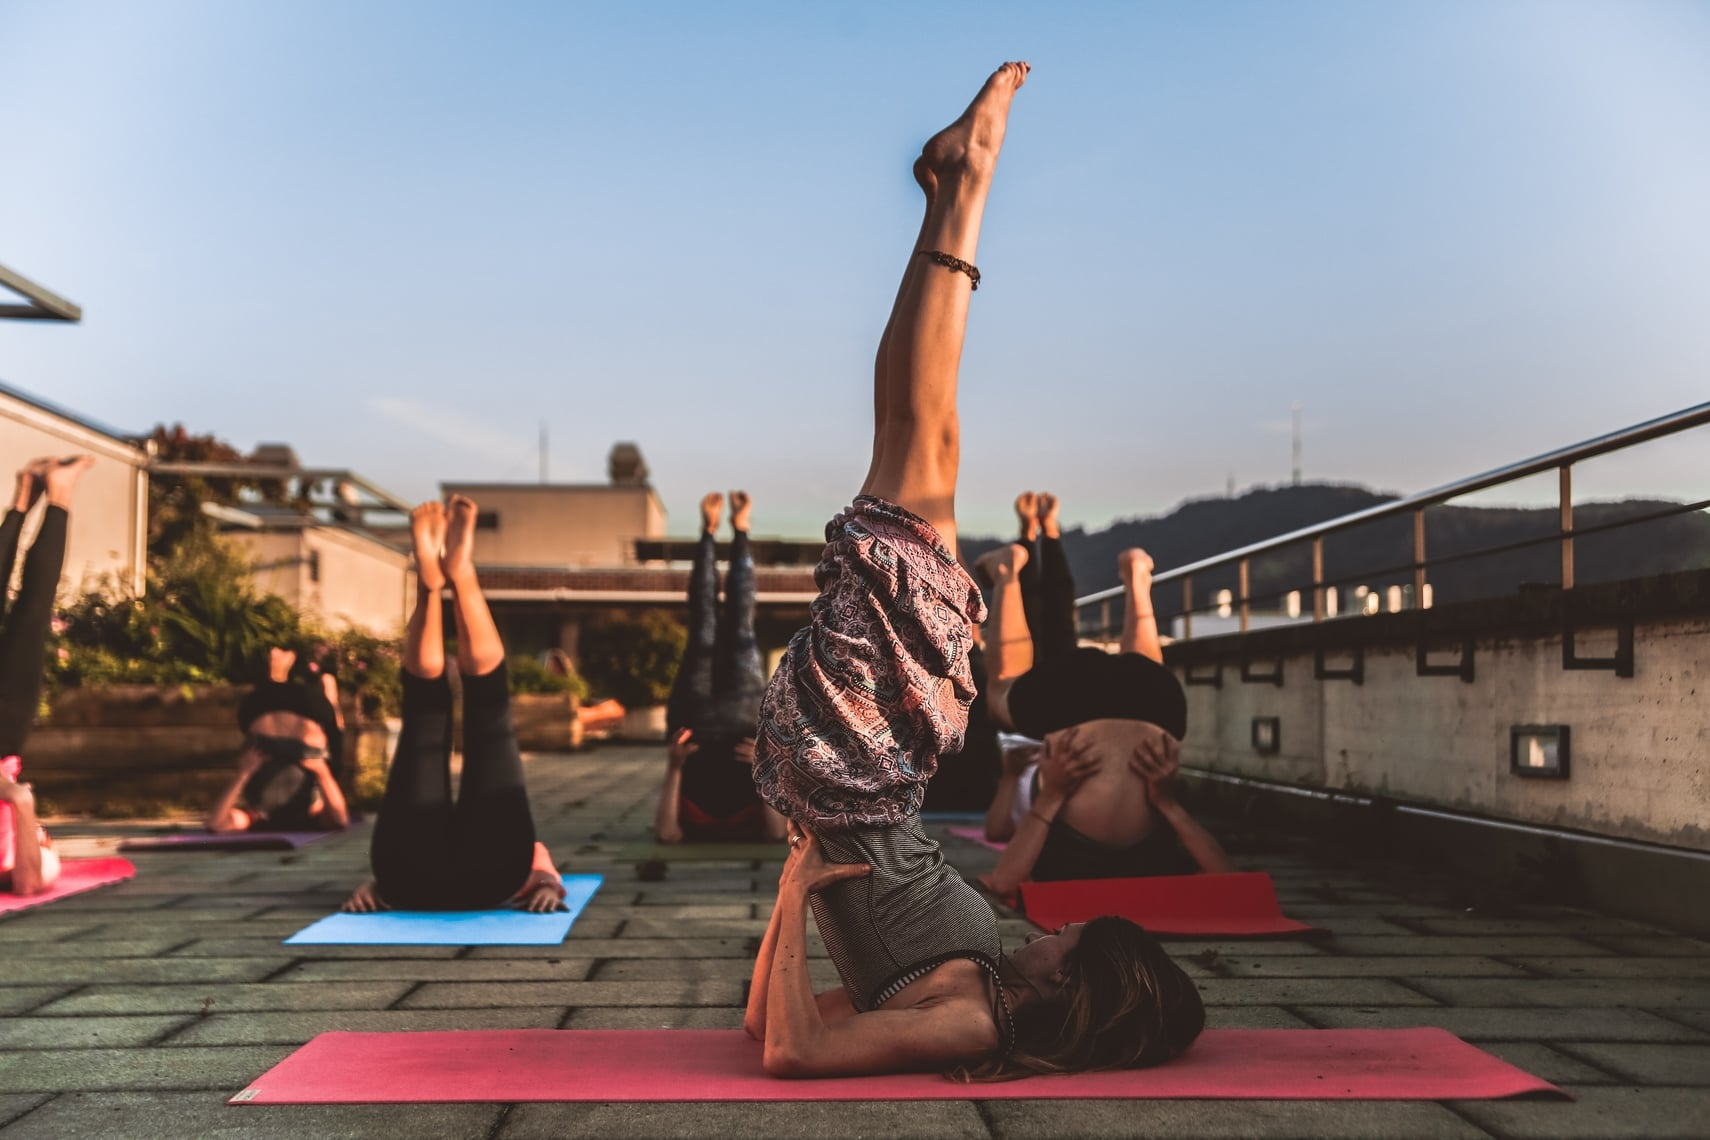 Work abroad as a yoga instructor